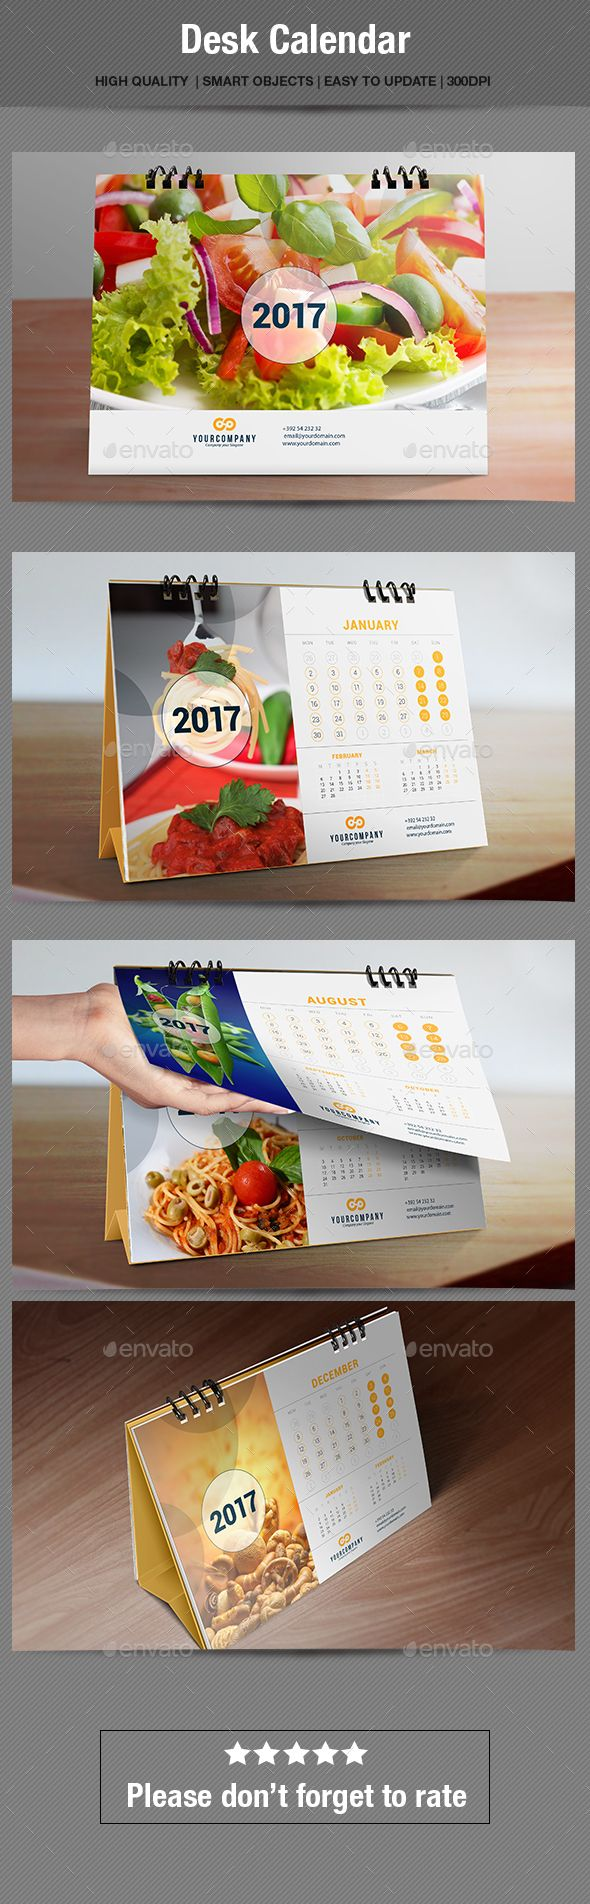 Desk Calendar 2017 Template PSD